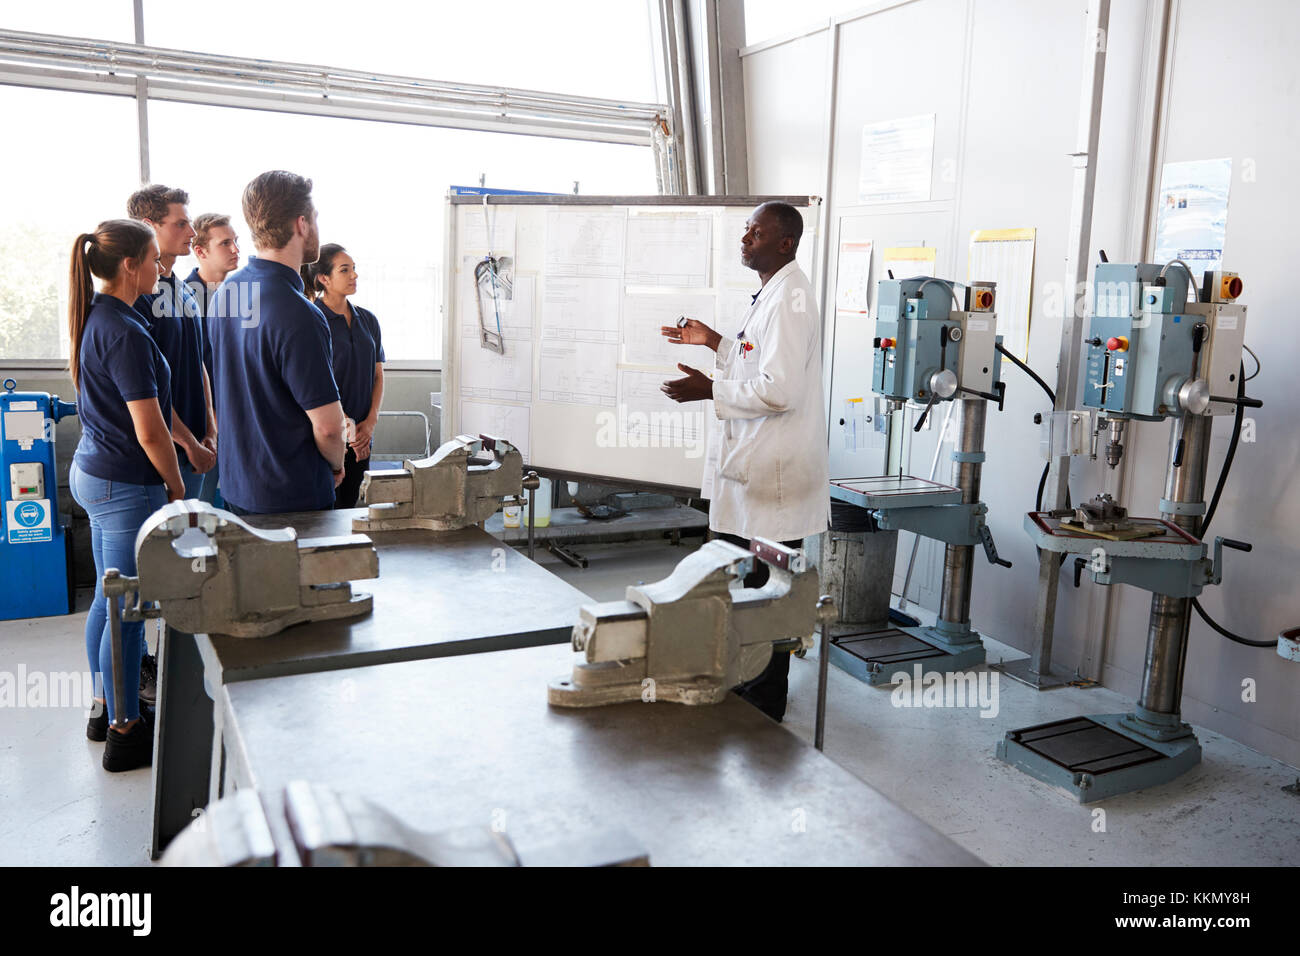 Engineer instructing apprentices at a whiteboard, side view - Stock Image